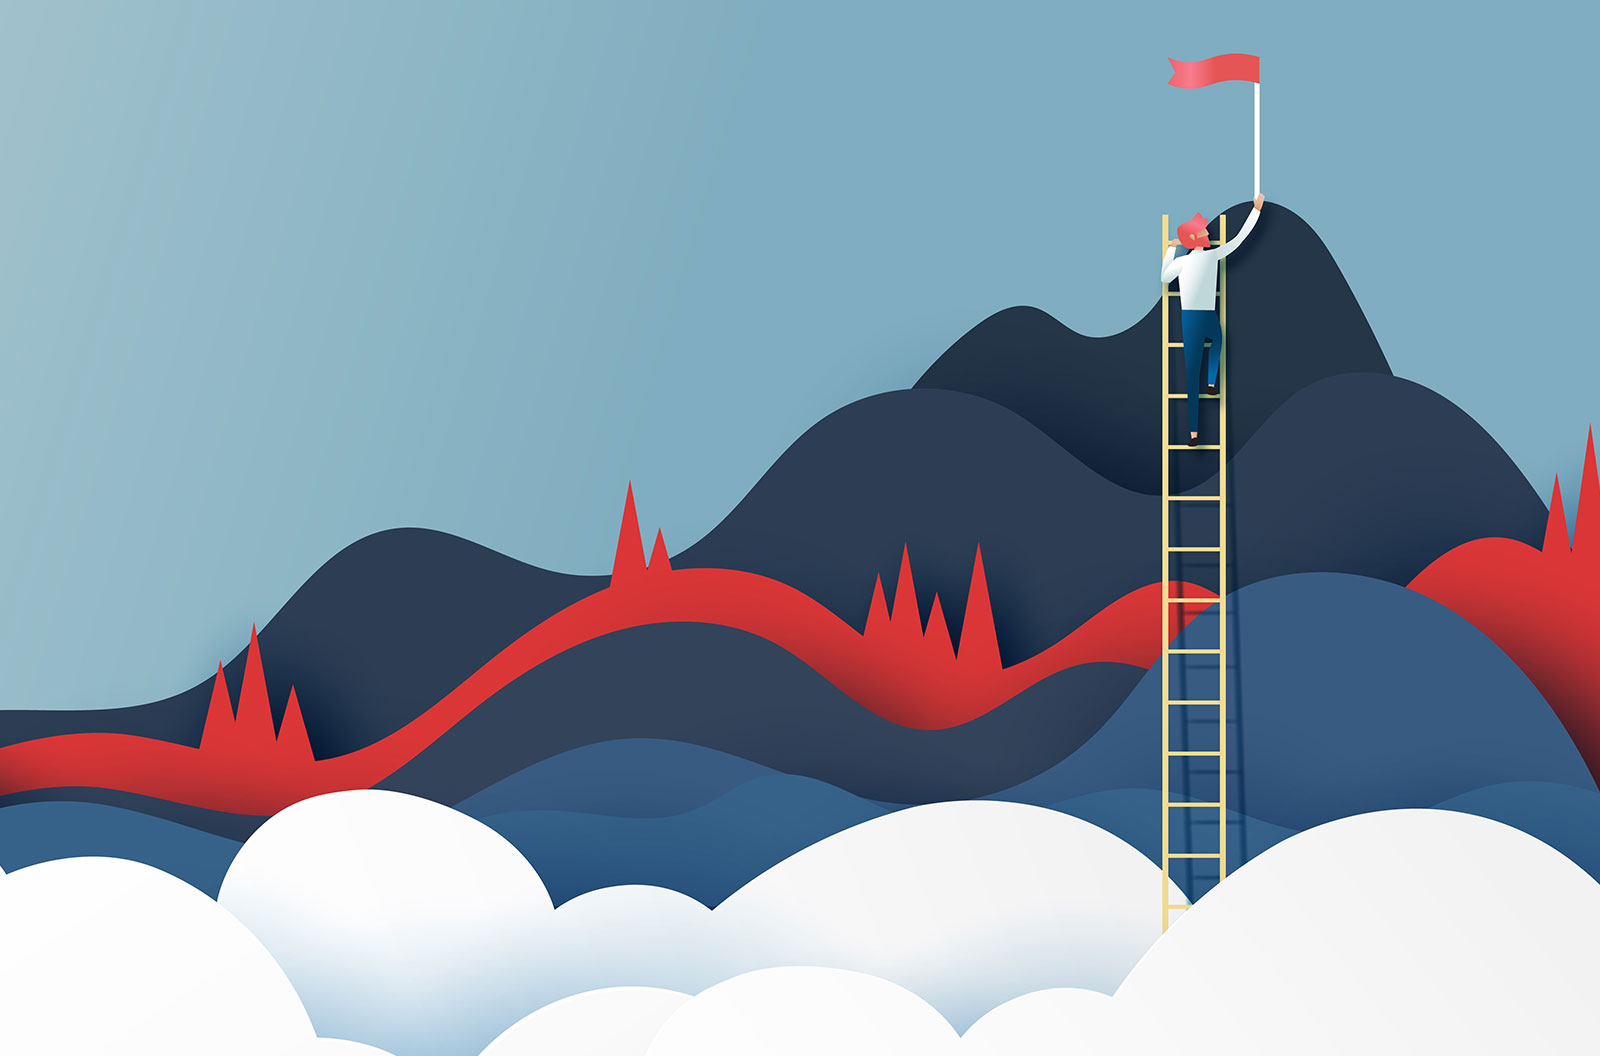 Vector illustration of business man on ladder reaching the red flag on the top of mountains.